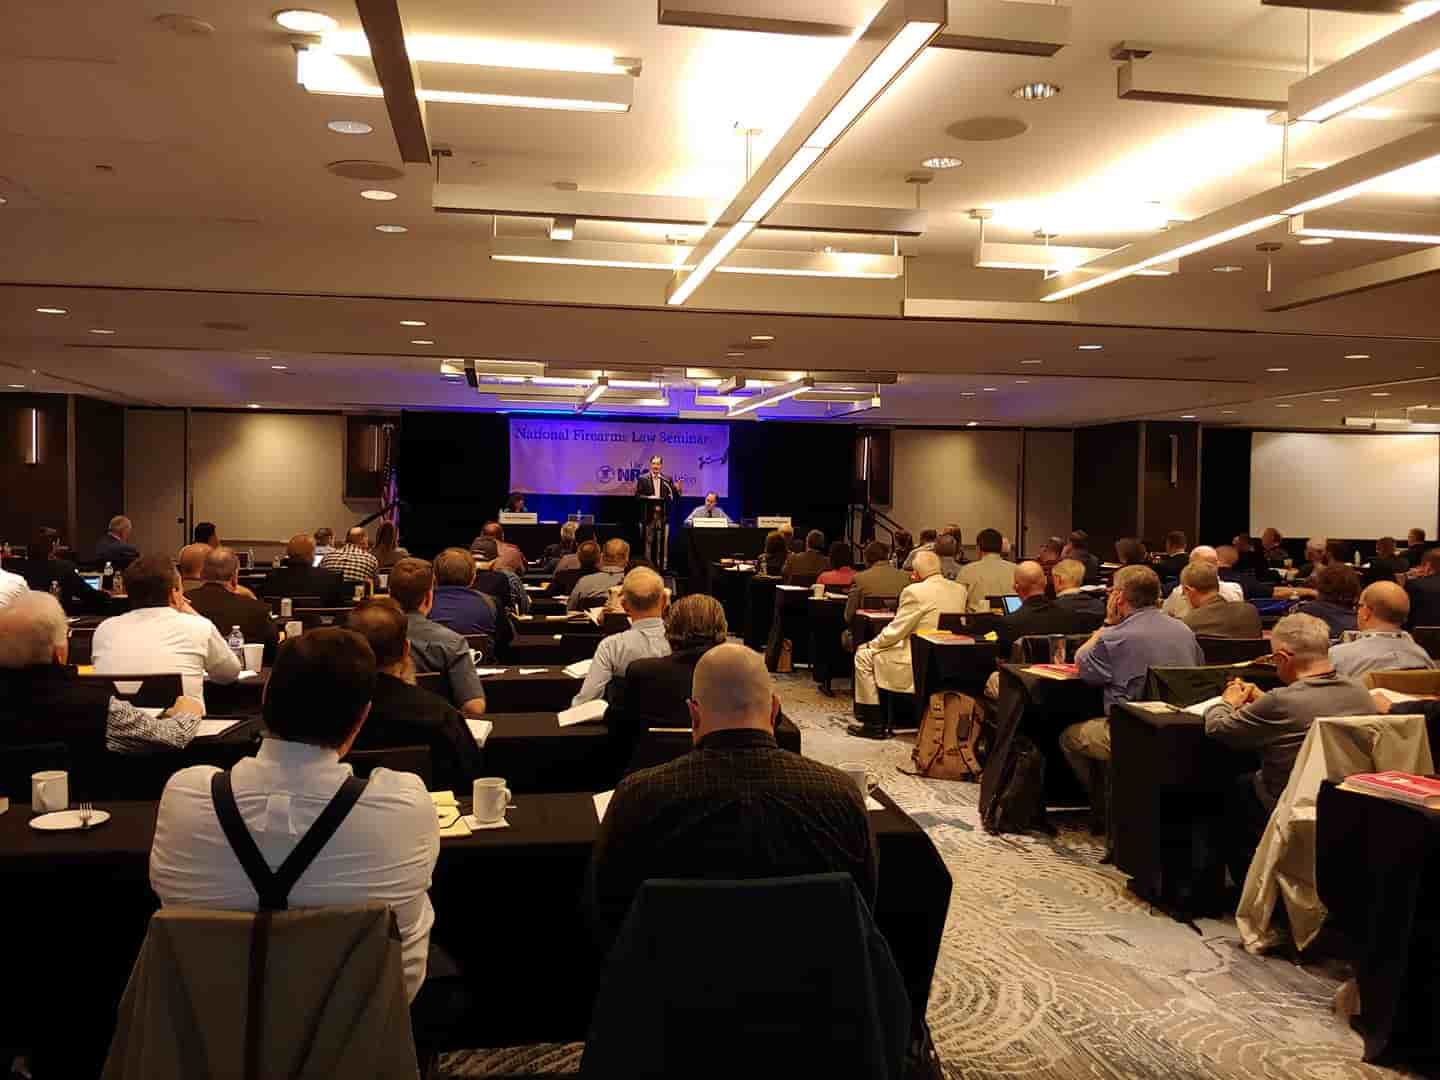 Thompson & Room W at the NRA Foundation's Annual National Firearms Law Seminar